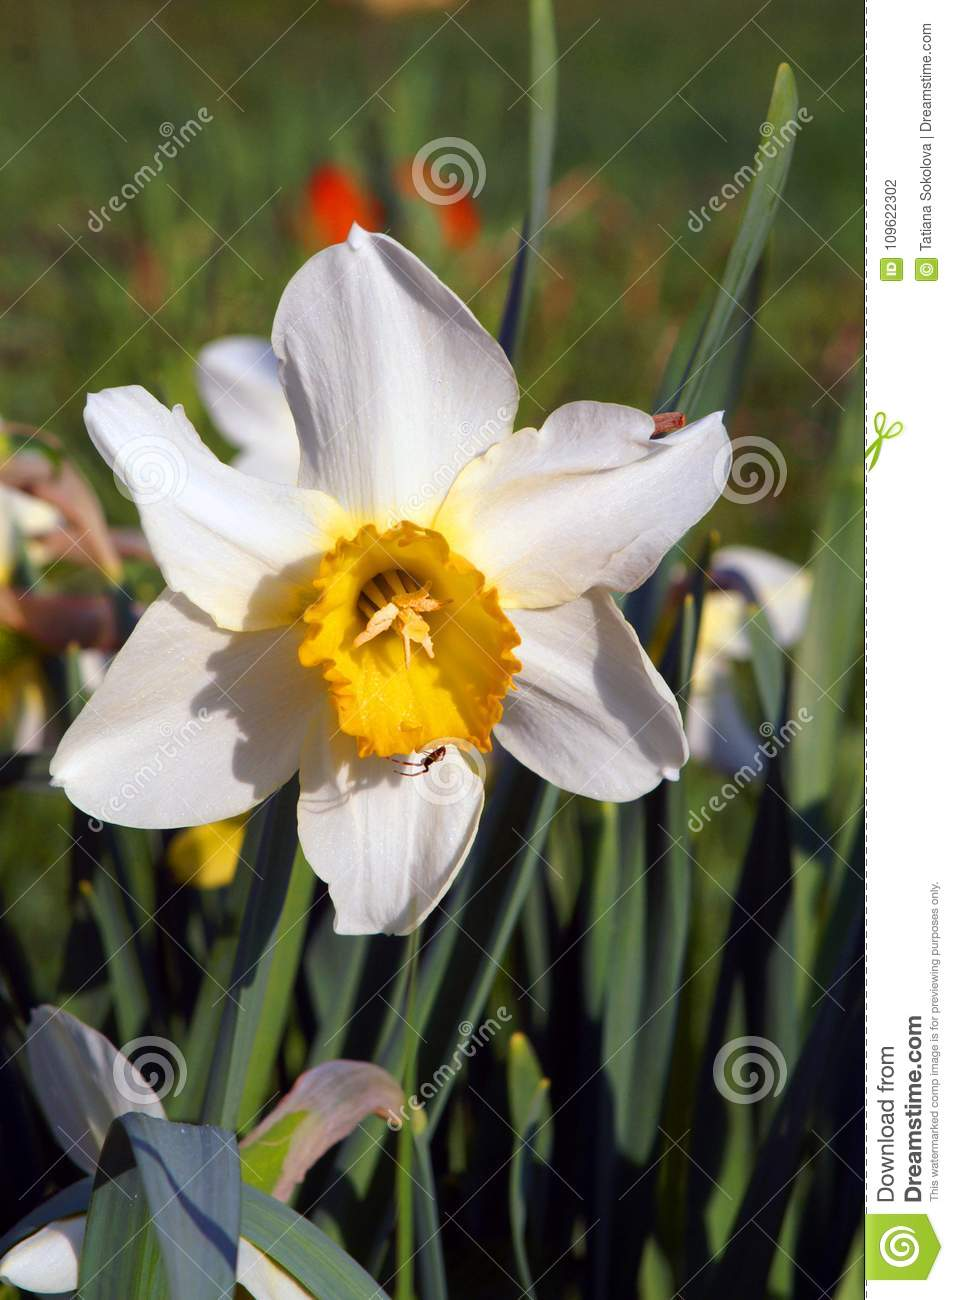 White Daffodil In A Spring Garden On A Green Background Stock Photo